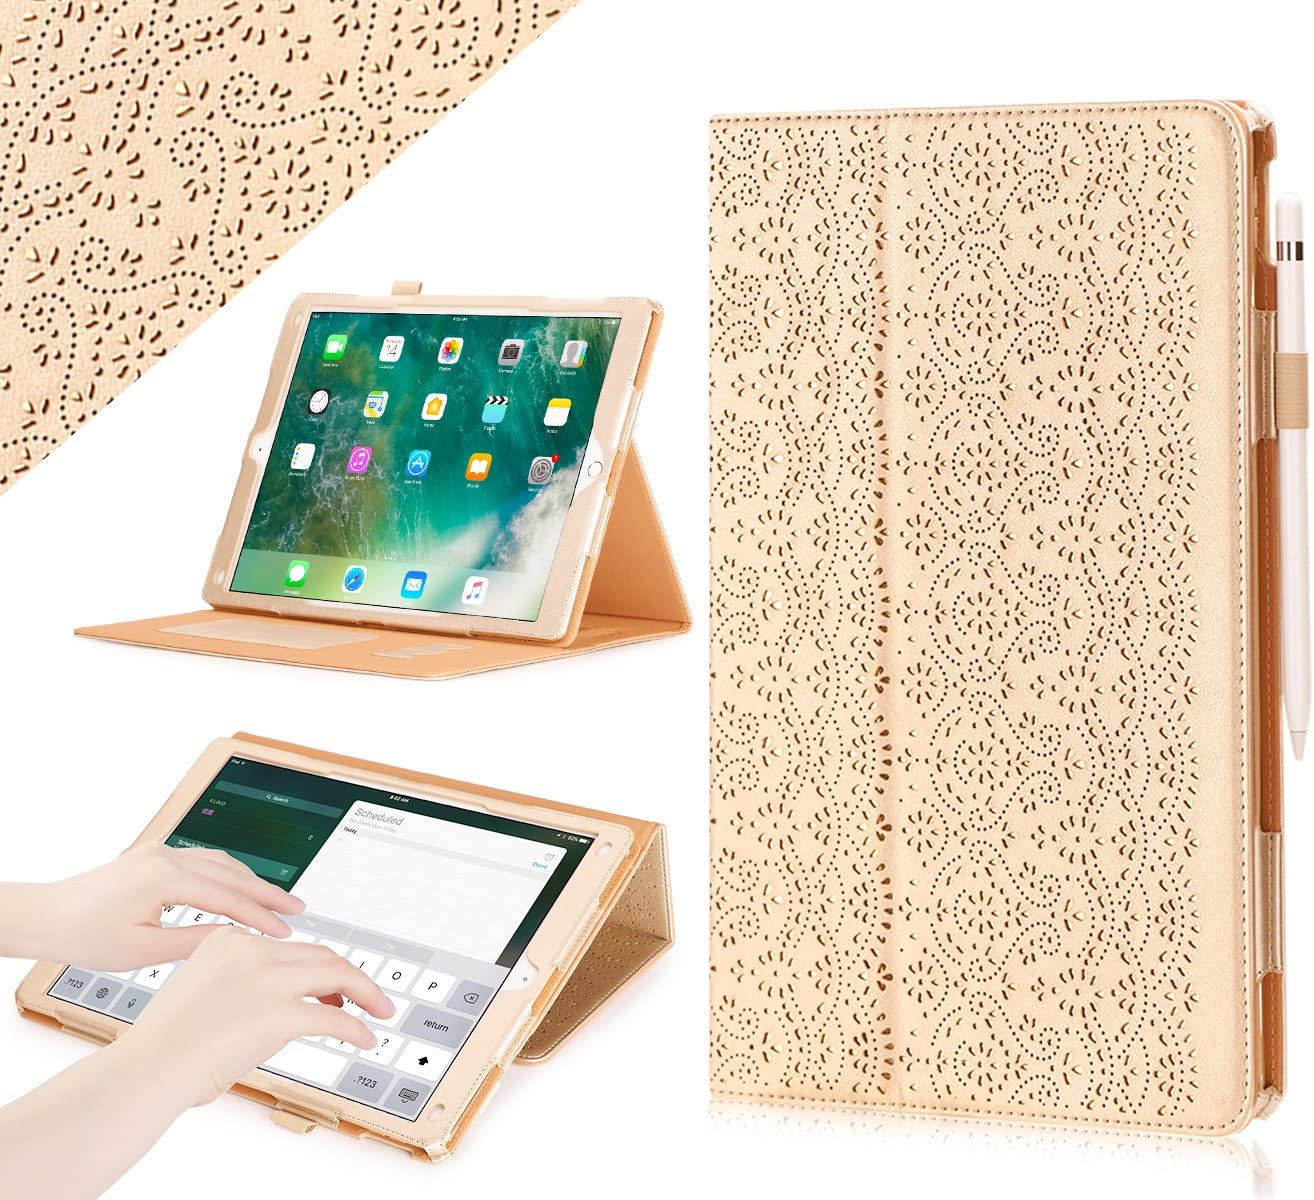 iPad Pro 12.9 (Compatible with 2017 and 2015 Model) Case, WWW [Luxury Laser Flower] Premium PU Leather Case Protective Cover with Auto Wake/Sleep Feature for iPad Pro 12.9 (Both 2017 and 2015) Gold